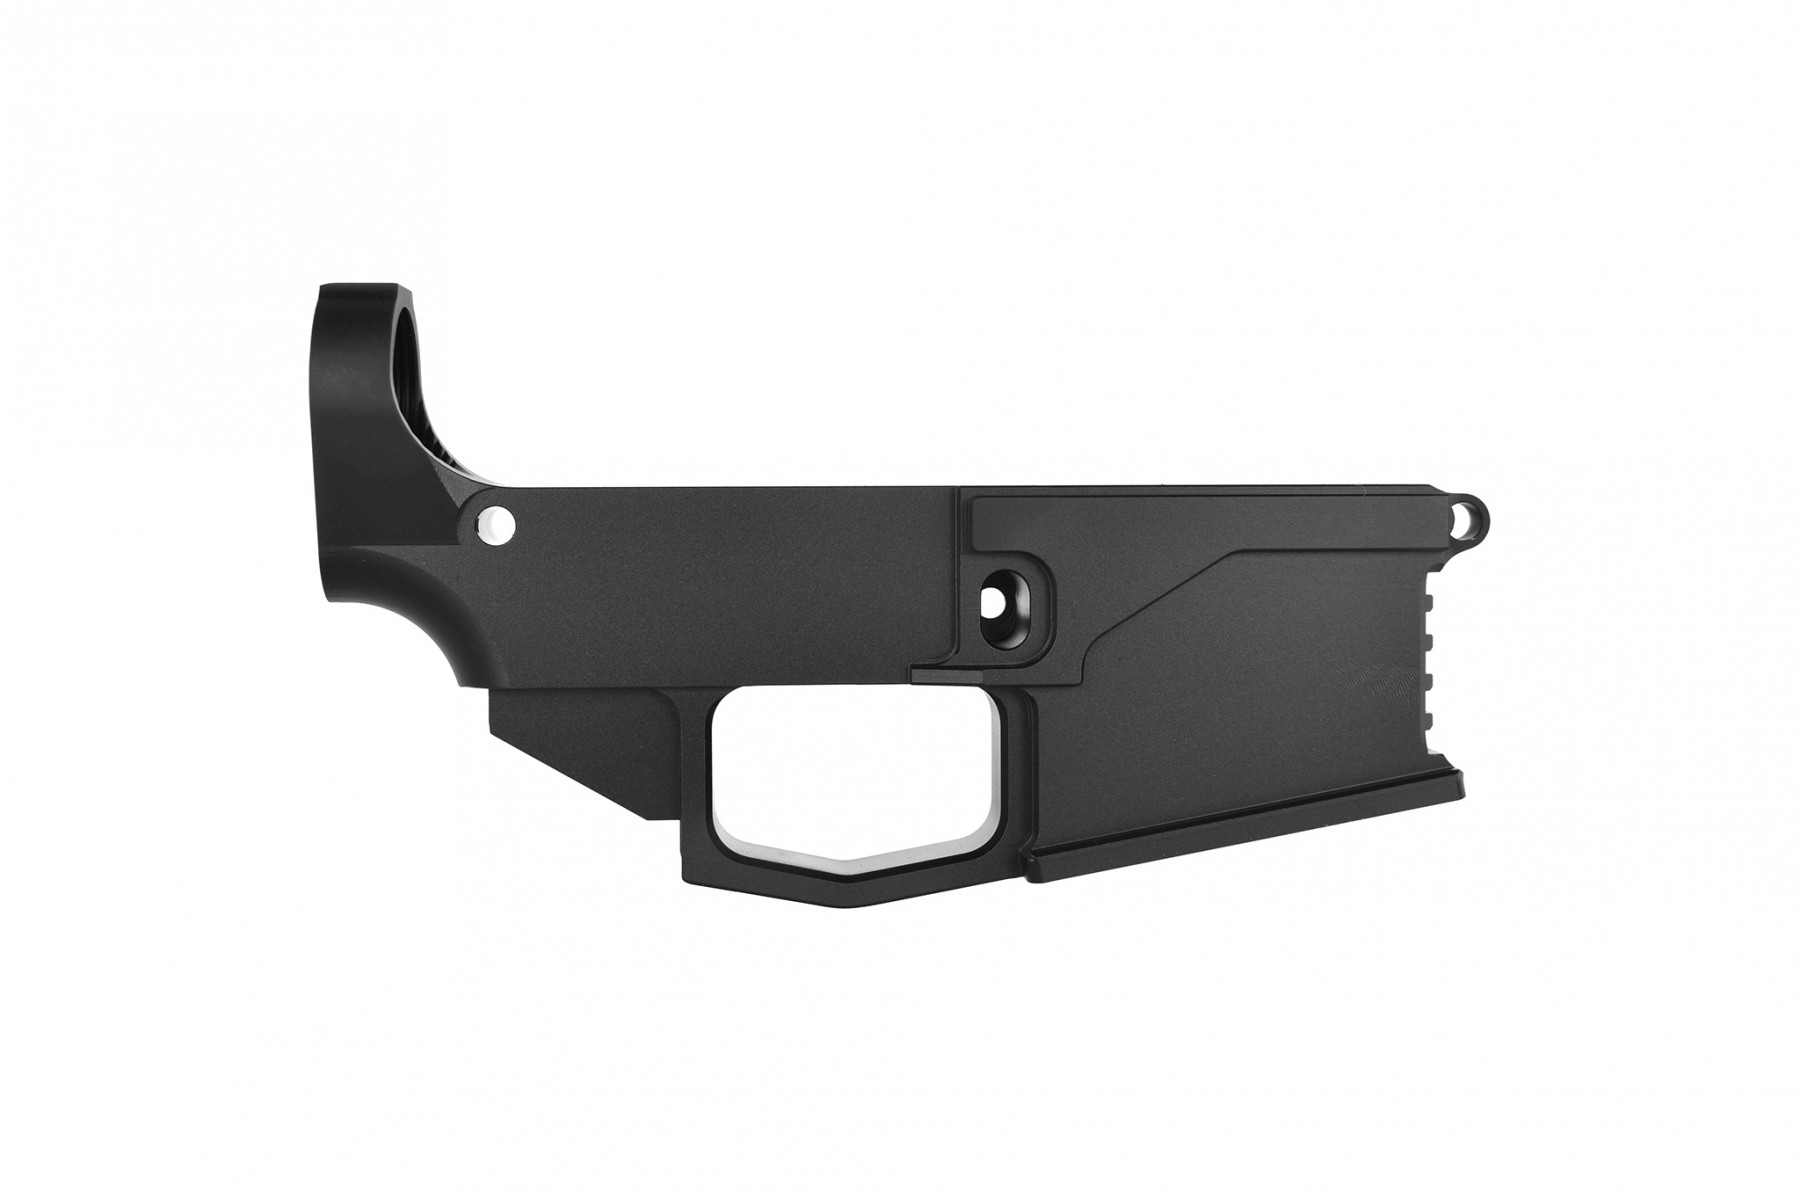 M1-80% AR15 Lower Receiver 10 Pack